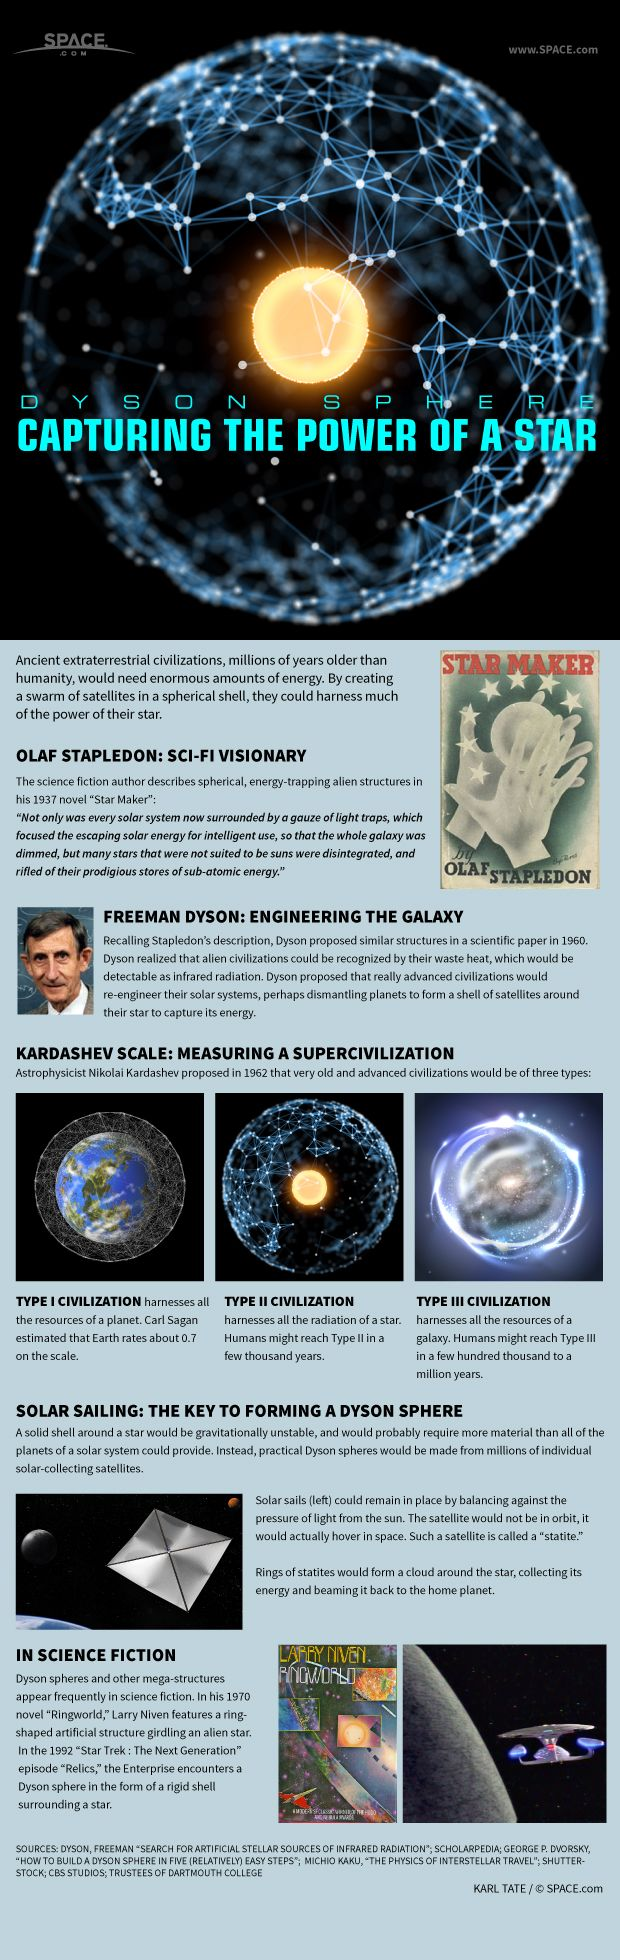 An essay on the observation of the universe by freeman dyson